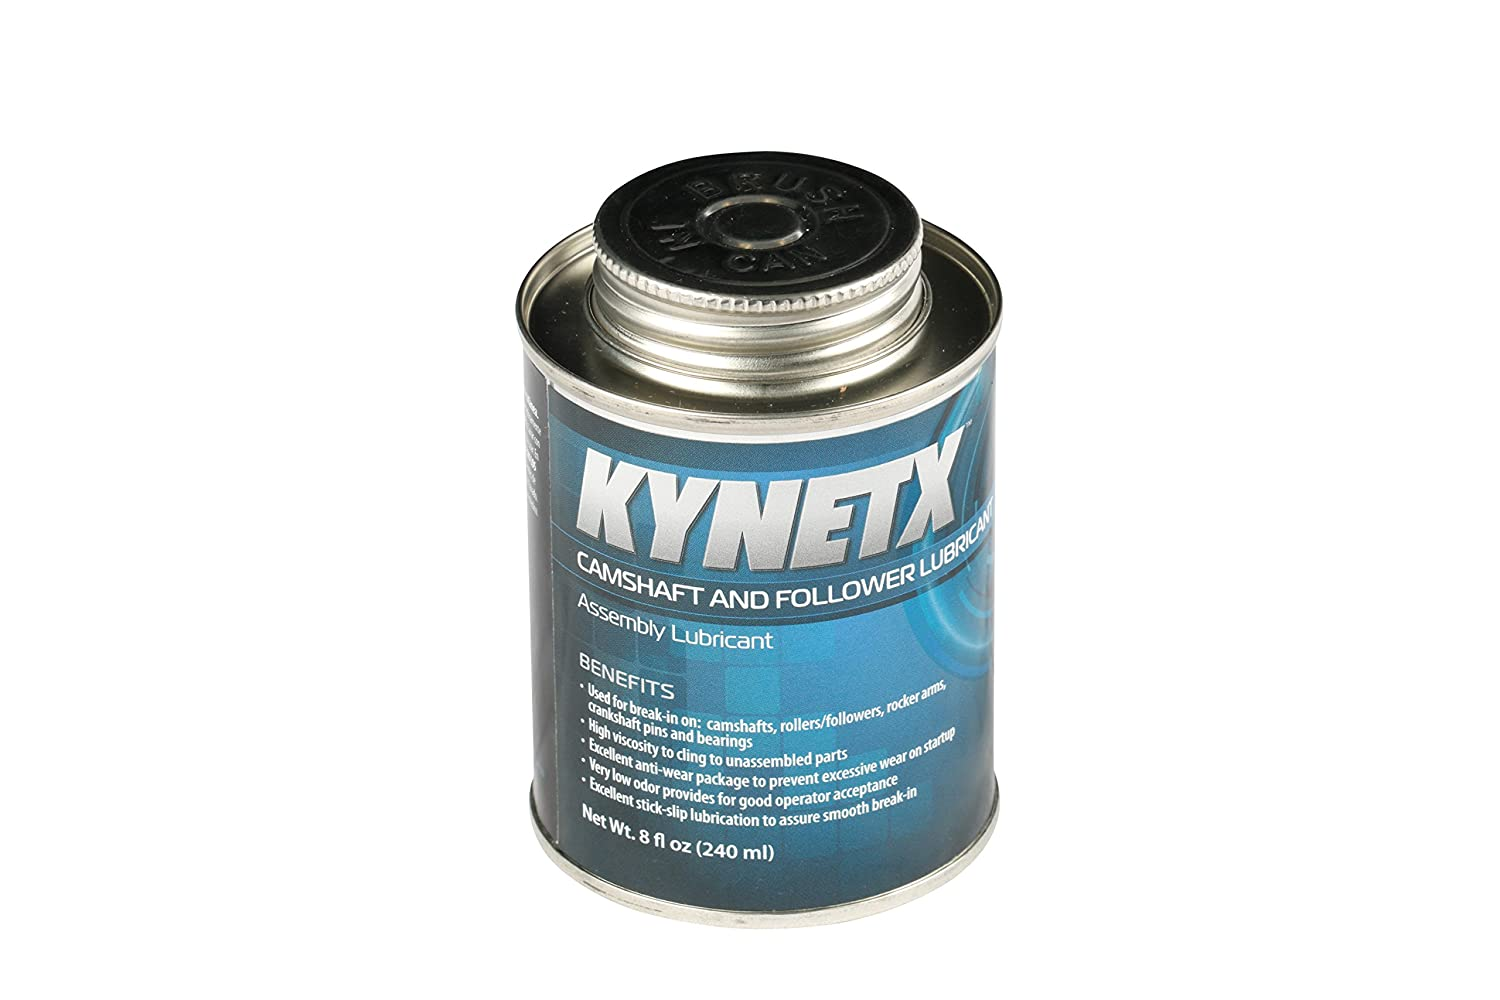 Kynetx Lube, 8 Oz Can 8435000000-KN9023 - Machinery Lubricant with High Viscosity and Low Odor. Automotive and Industrial Fluids and Maintenances